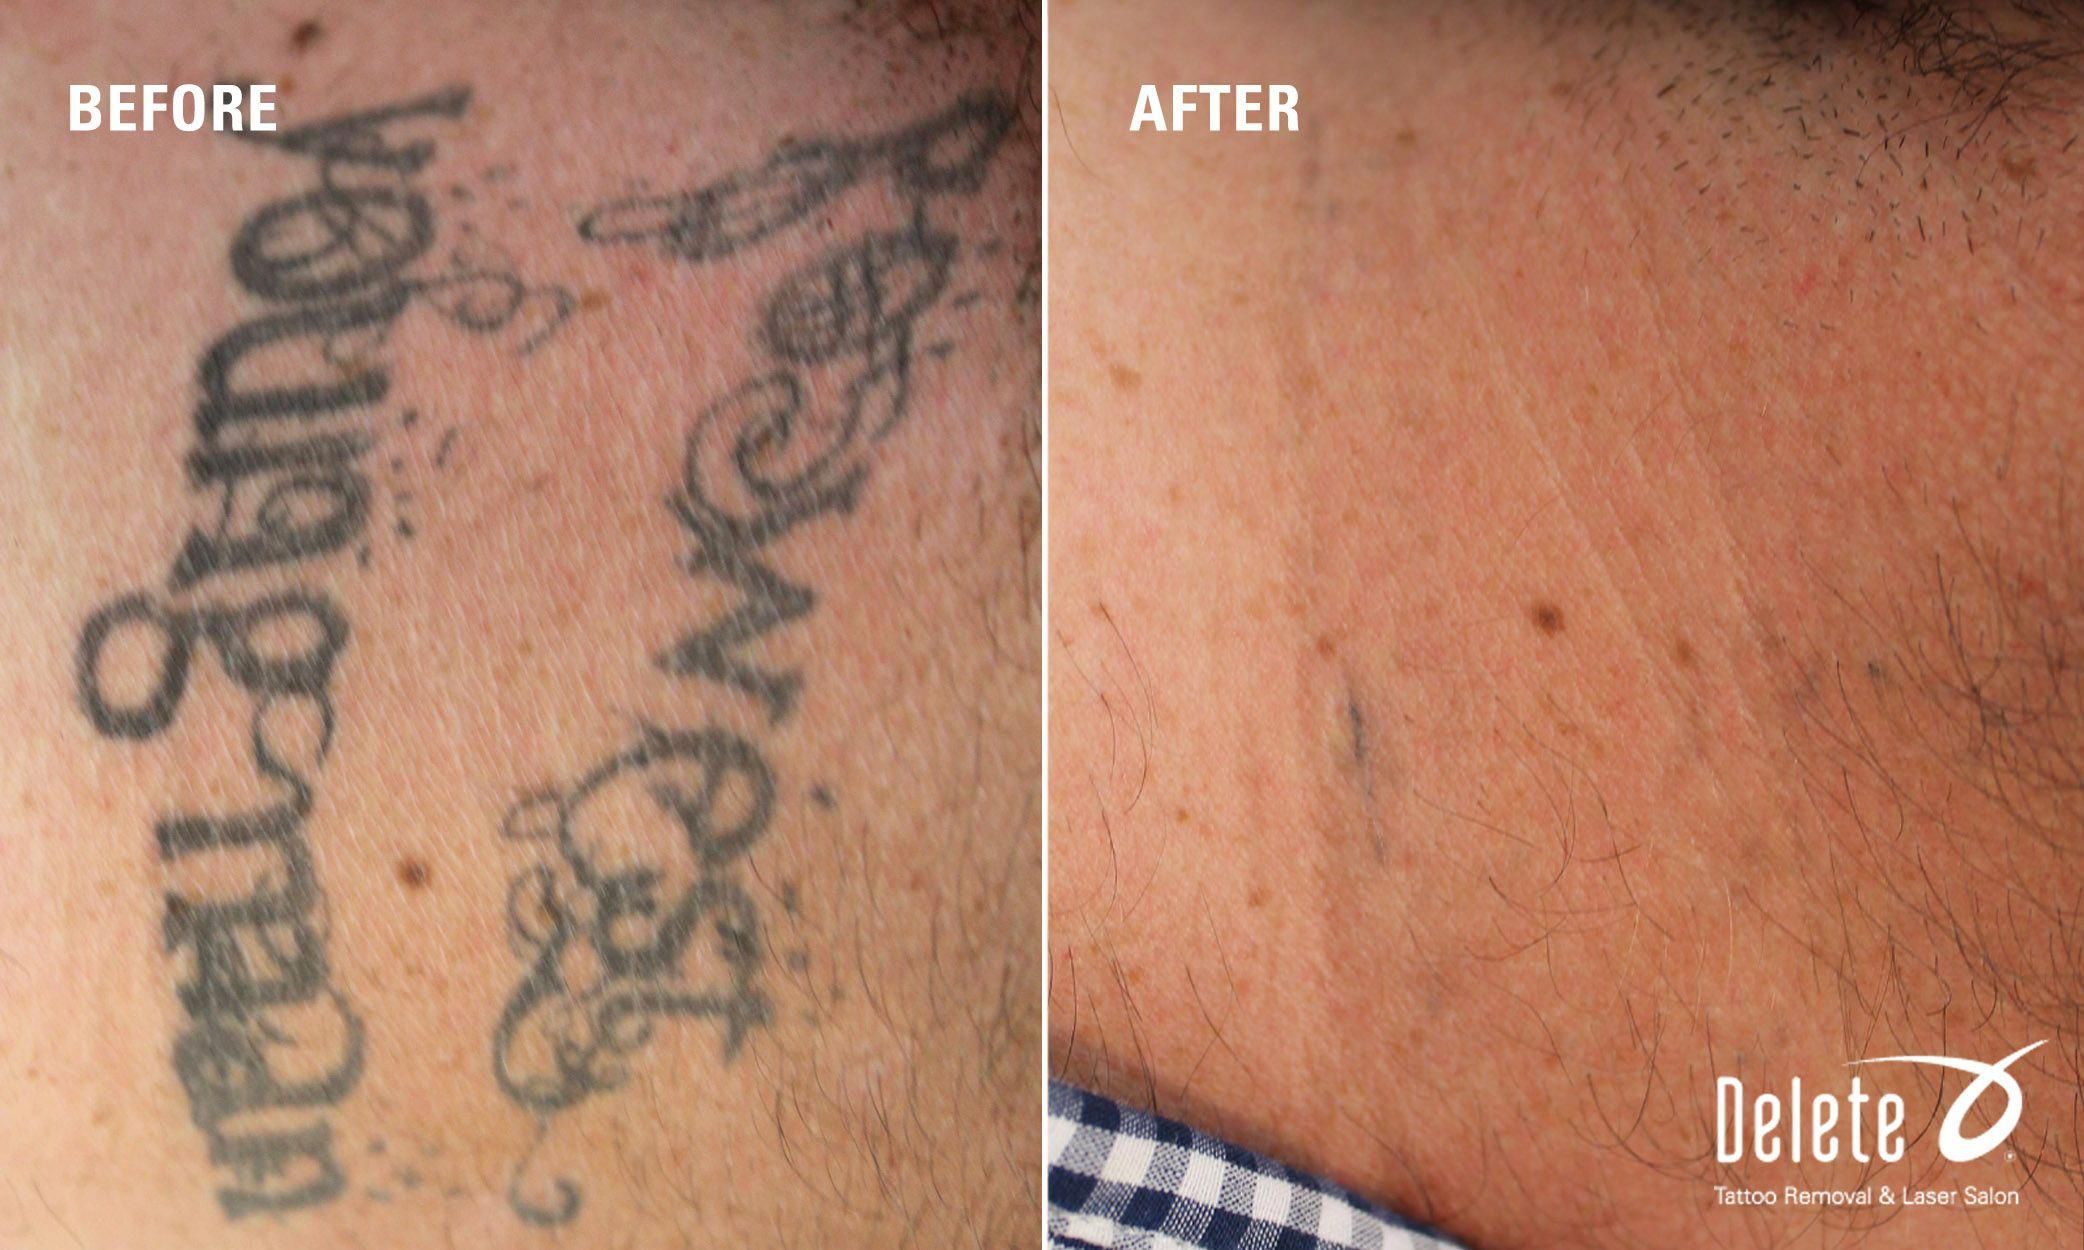 When It Is About Getting A Job Or Joining The Military Patients Hit Delete To Remove Their Neck Tattoos Tattoo Removal Laser Tattoo Removal How To Remove